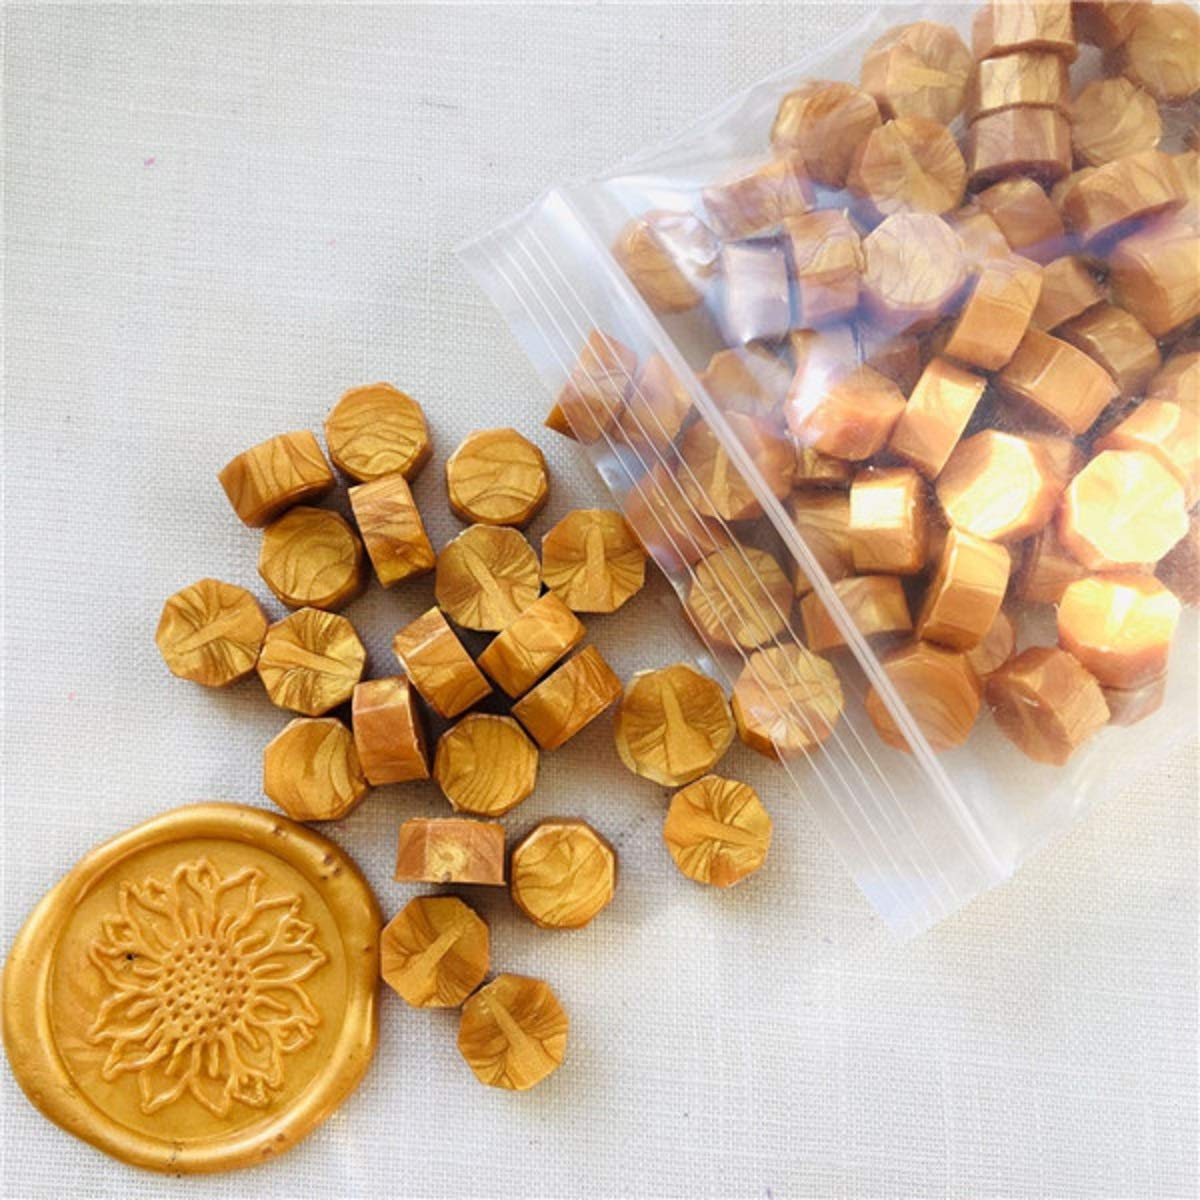 100Pcs//Bag Retro Vintage Sealing Wax Tablet Pill Beads for Envelope Wax Seal Set